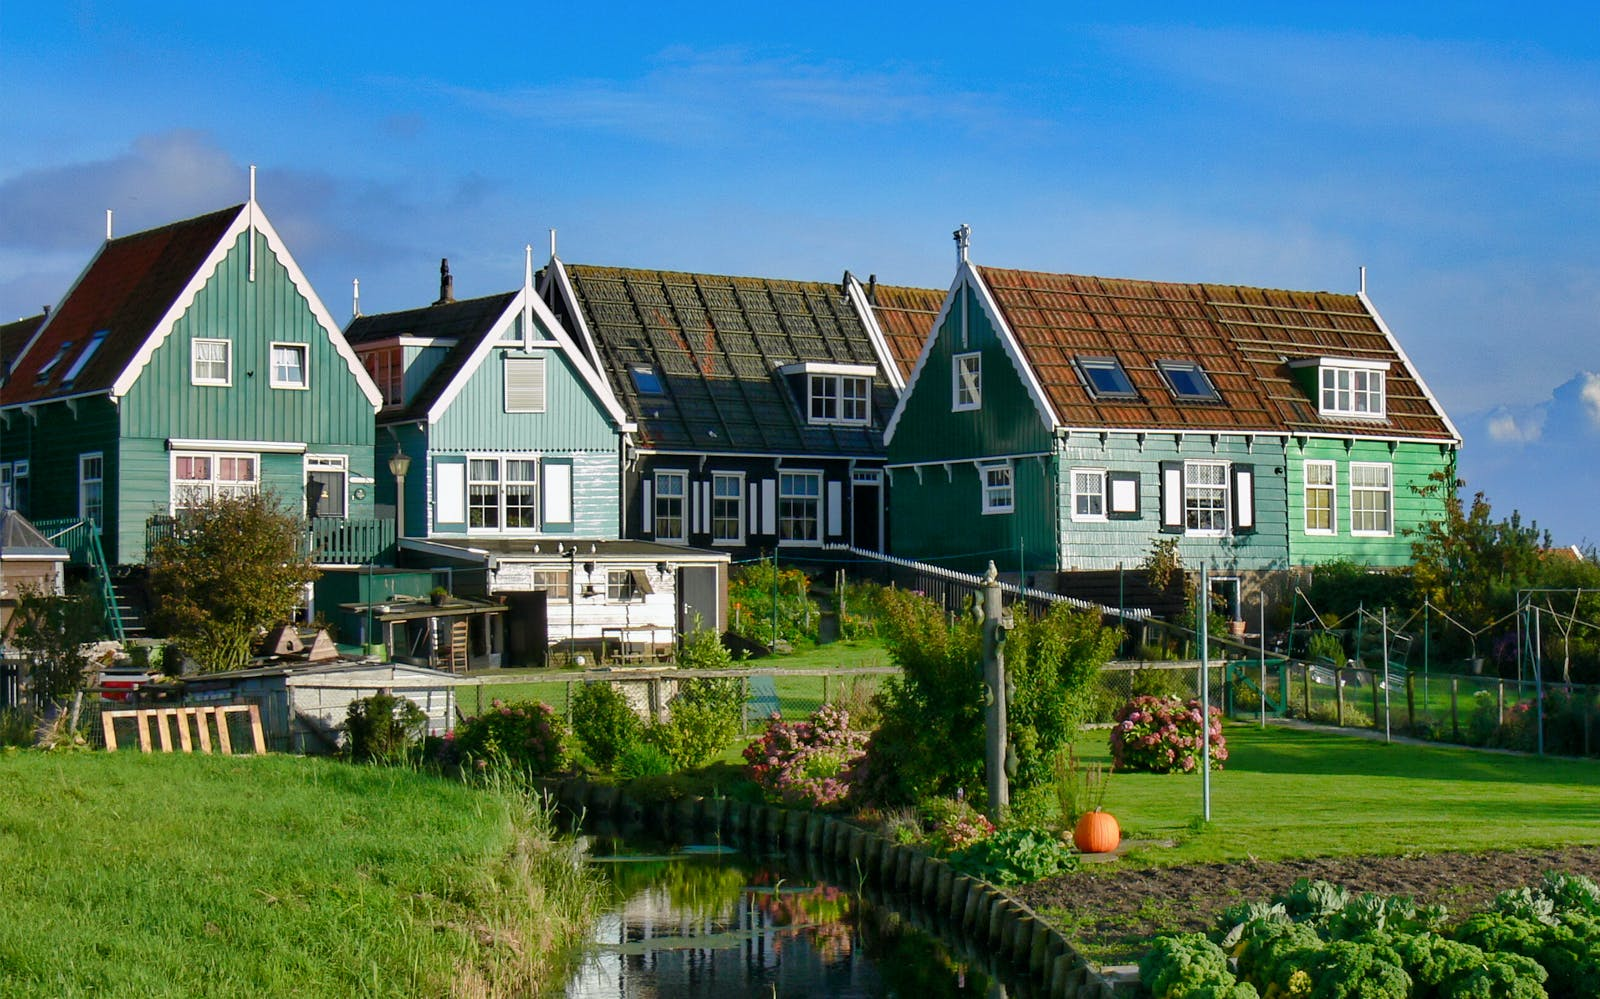 gps volendam, marken and the windmill village of zaanse schans tour-2